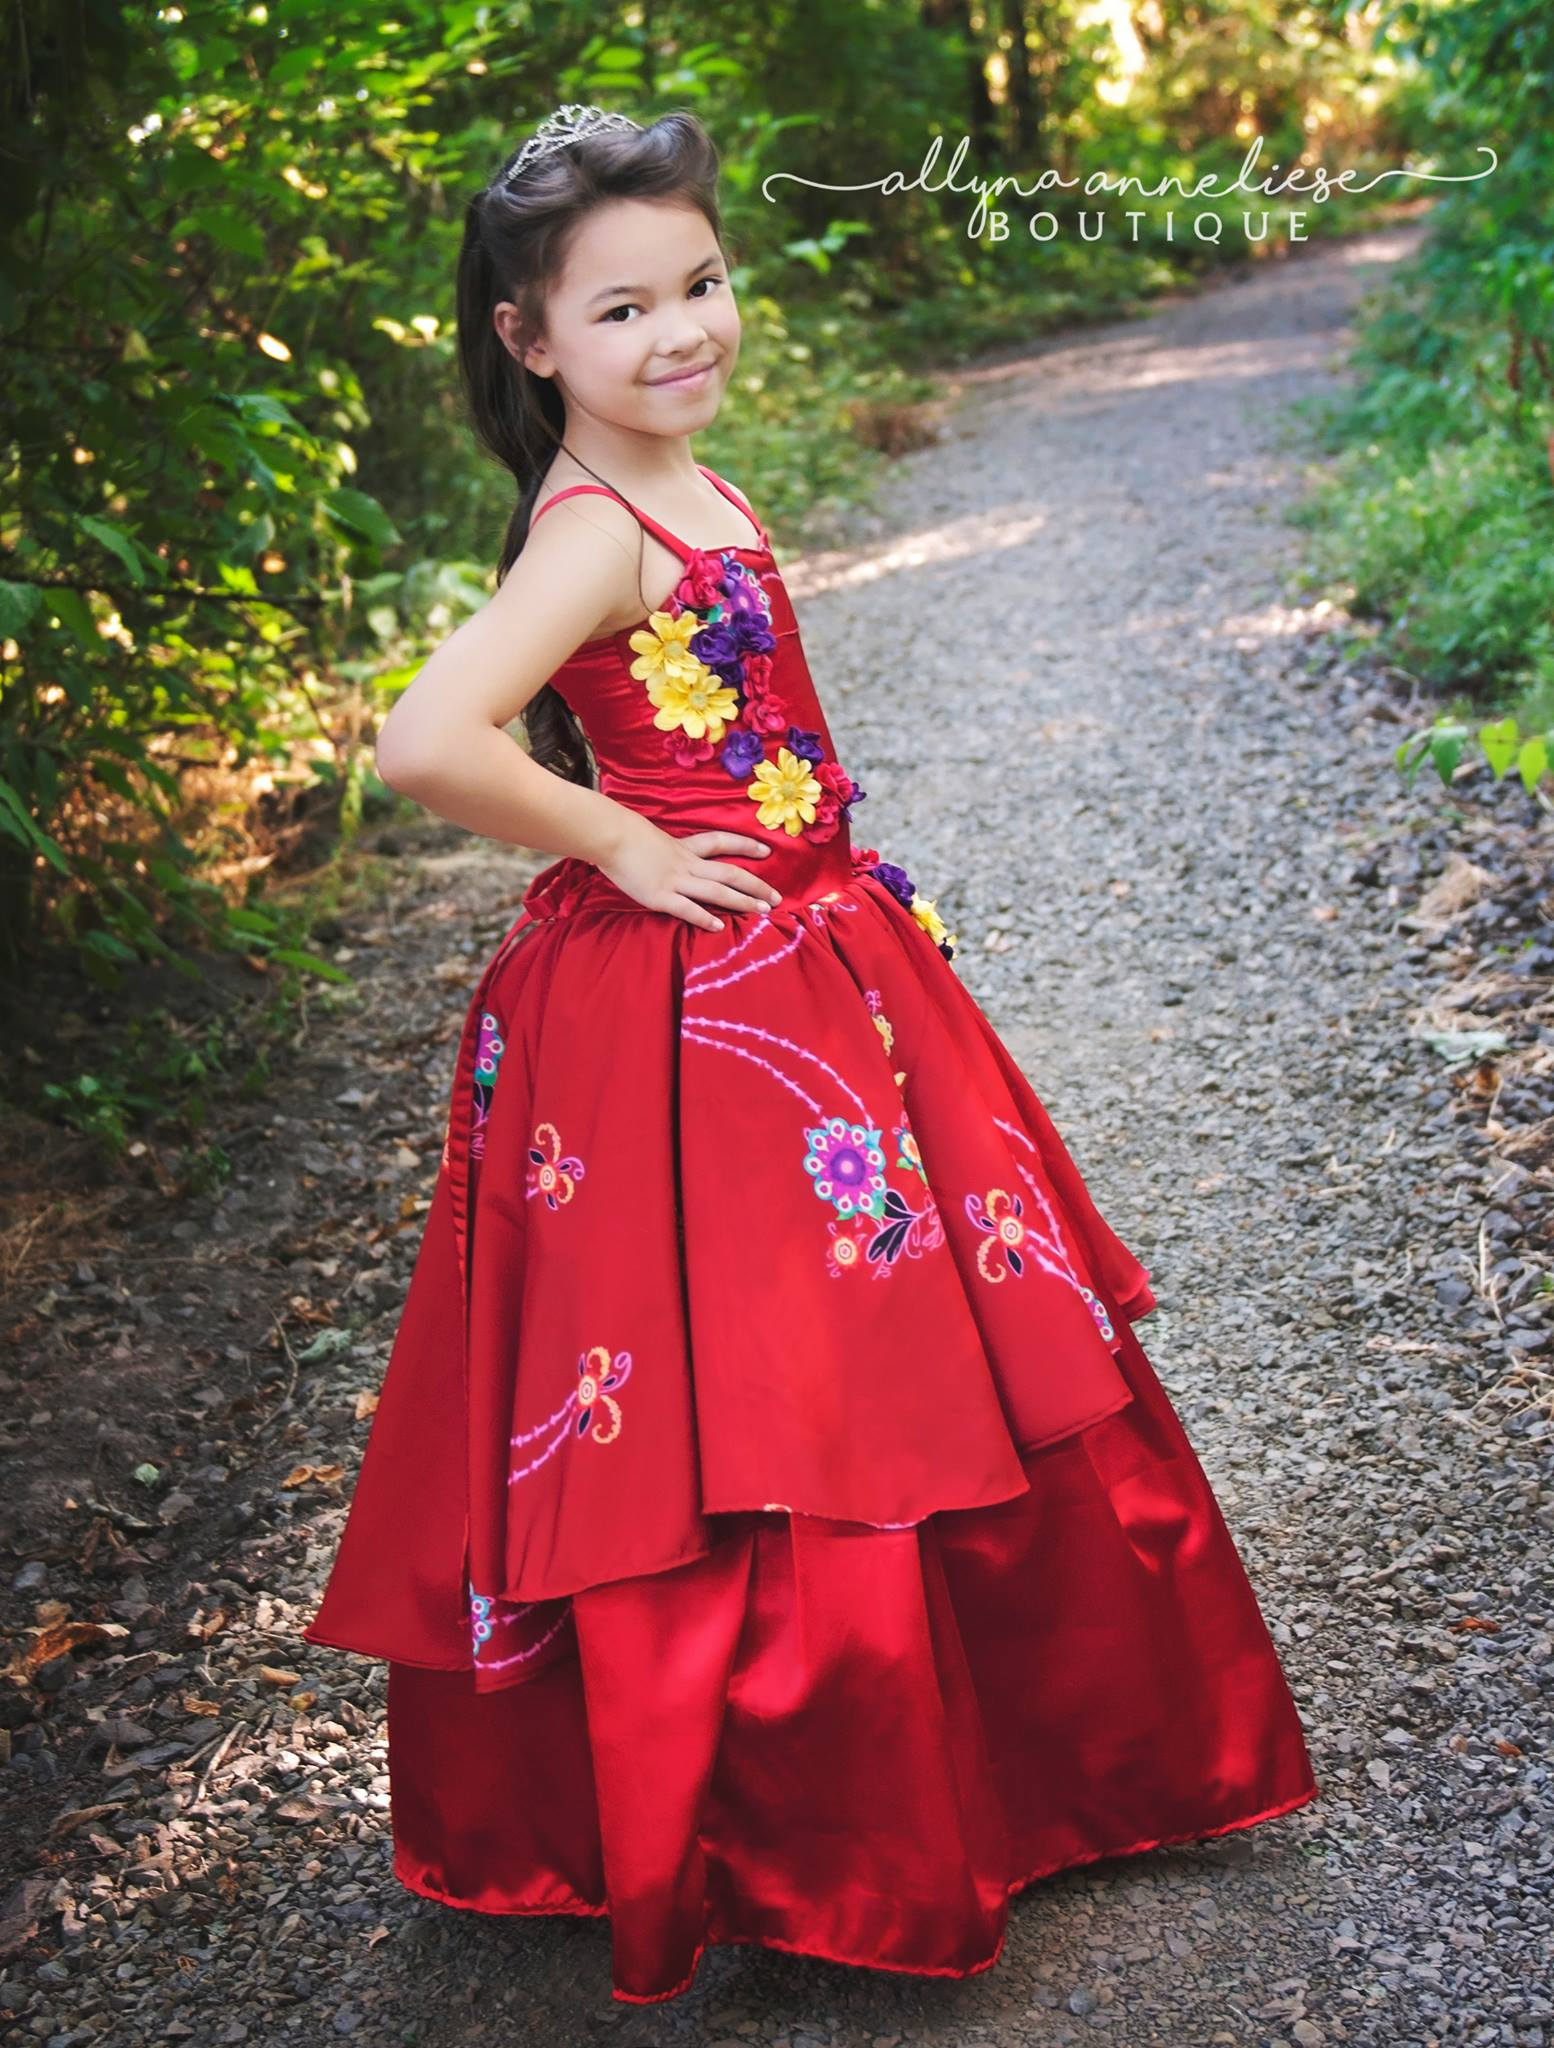 Vale's Corset Gown Sizes 2T to 14 Kids and Dolls PDF Pattern